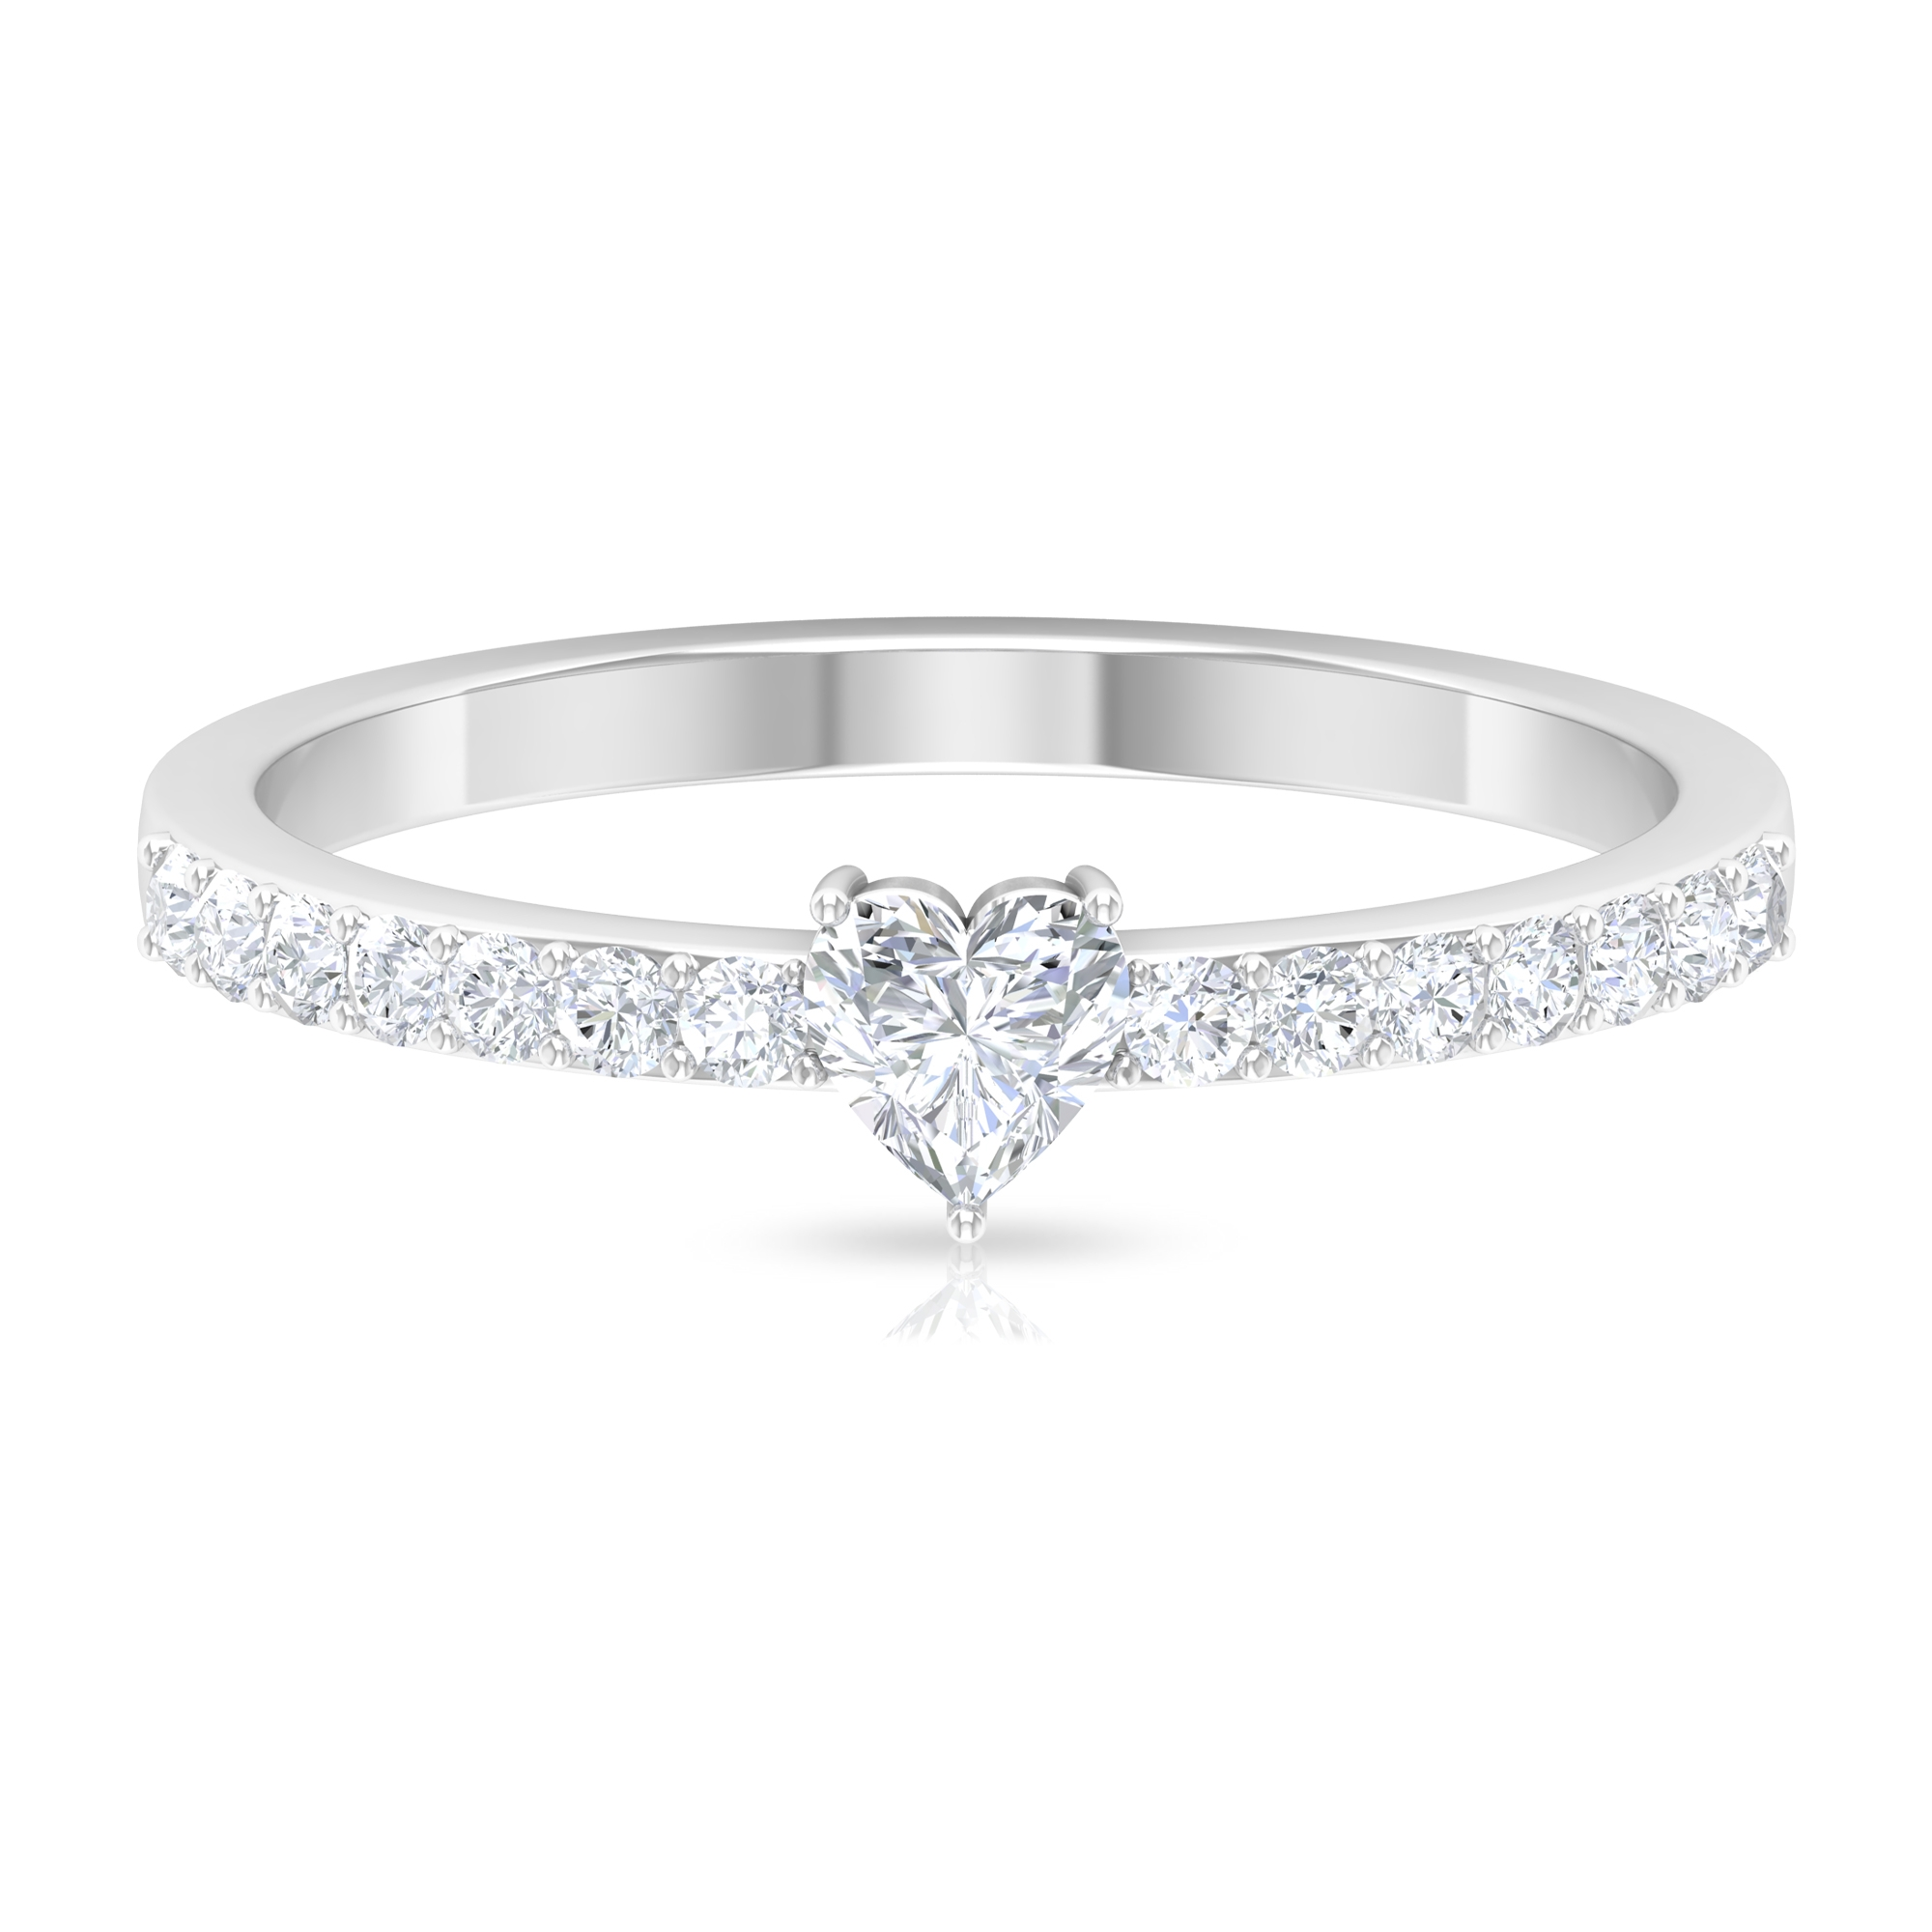 Three Prong Set 4 MM Heart Diamond Solitaire Ring with Surface Prong Set Side Stones